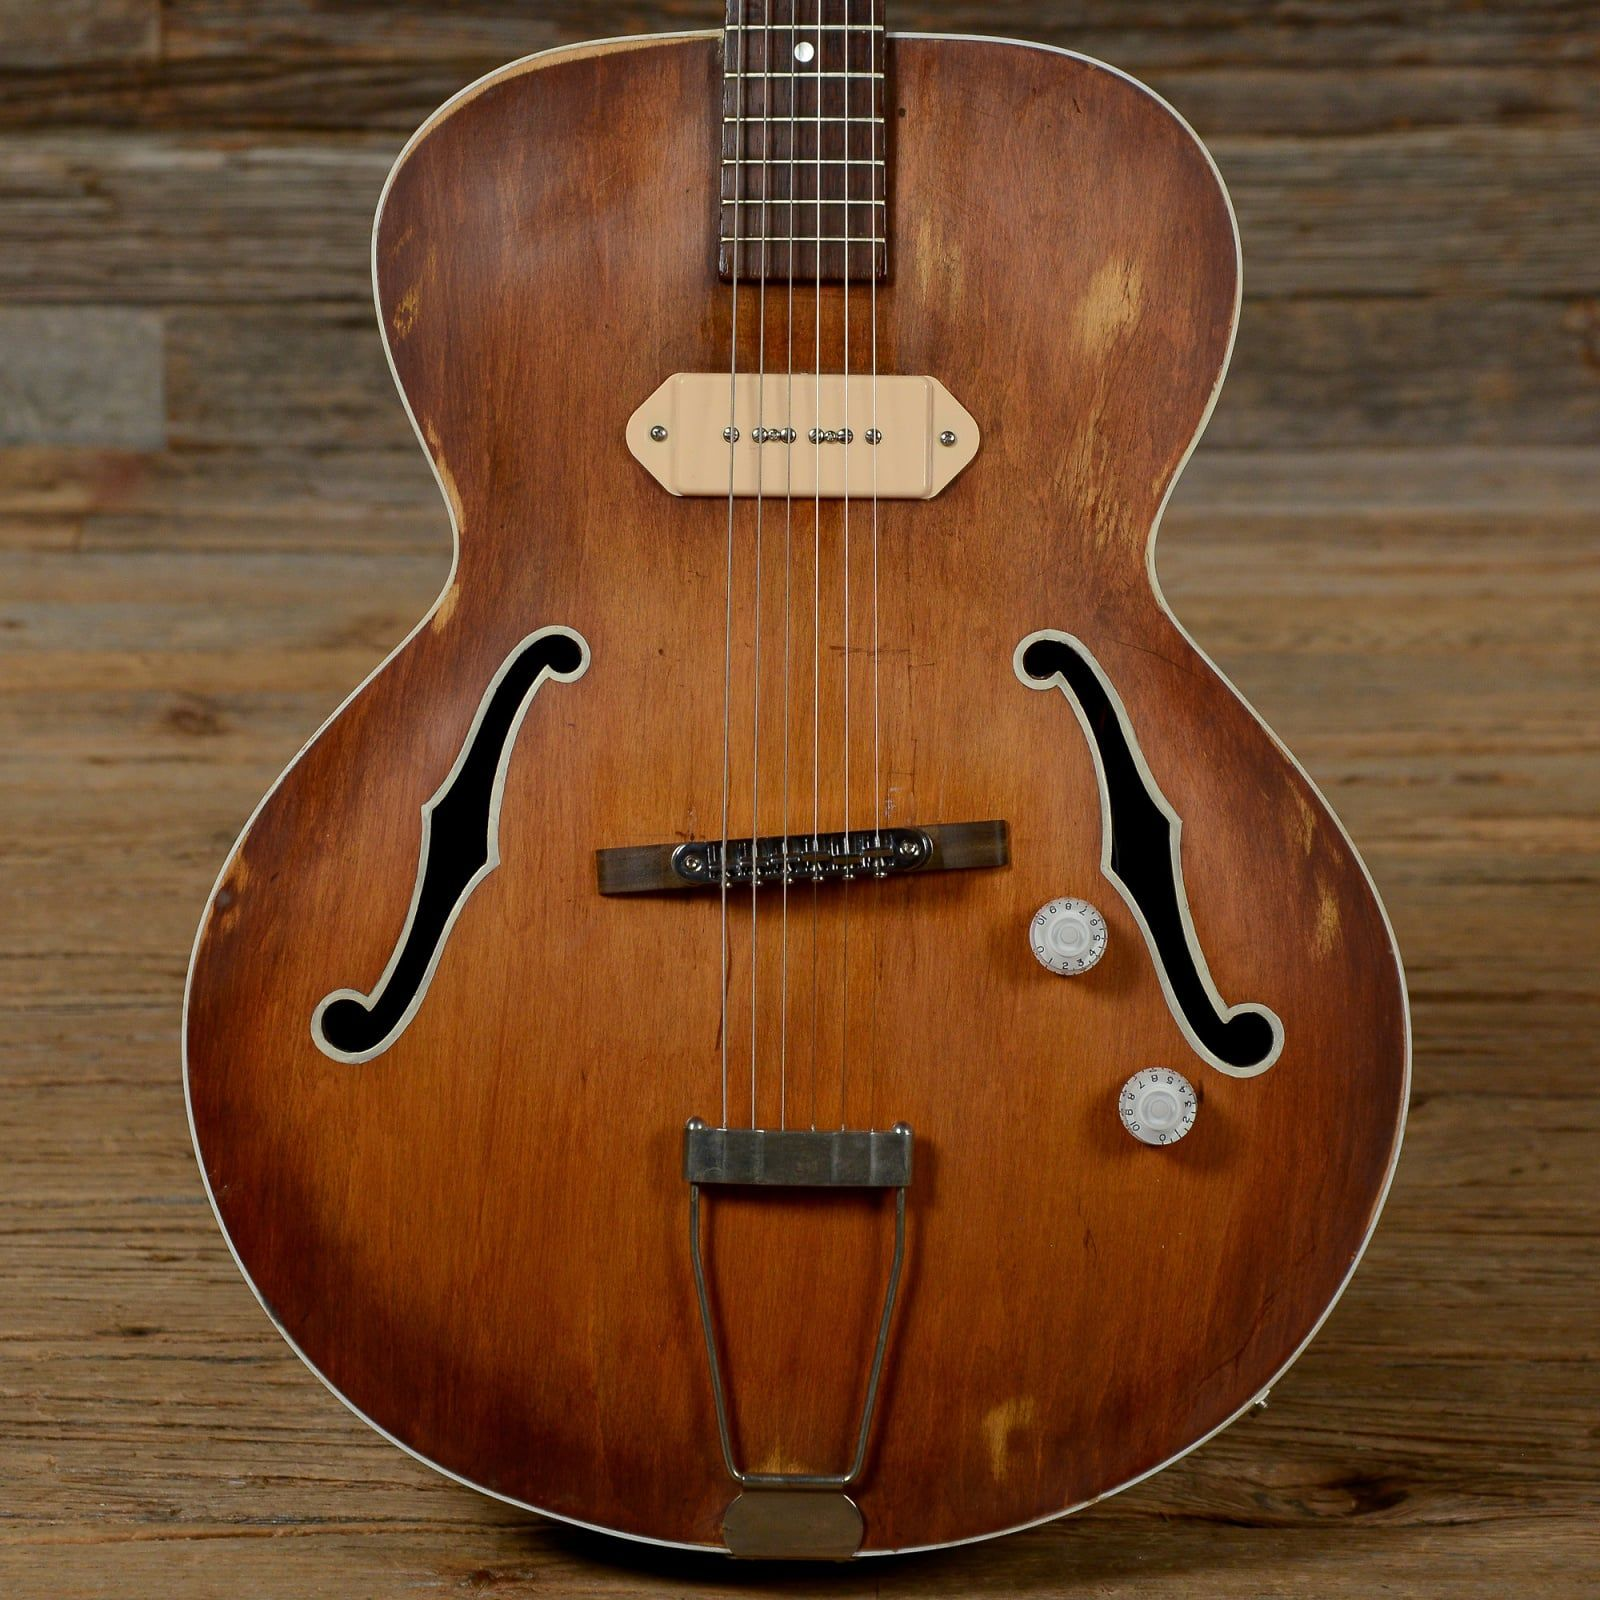 Gibson Es 125 Brown Refin 1950s Sbxx Chicago Music Exchange Reverb Exposed Wood Gibson Guitar For Beginners